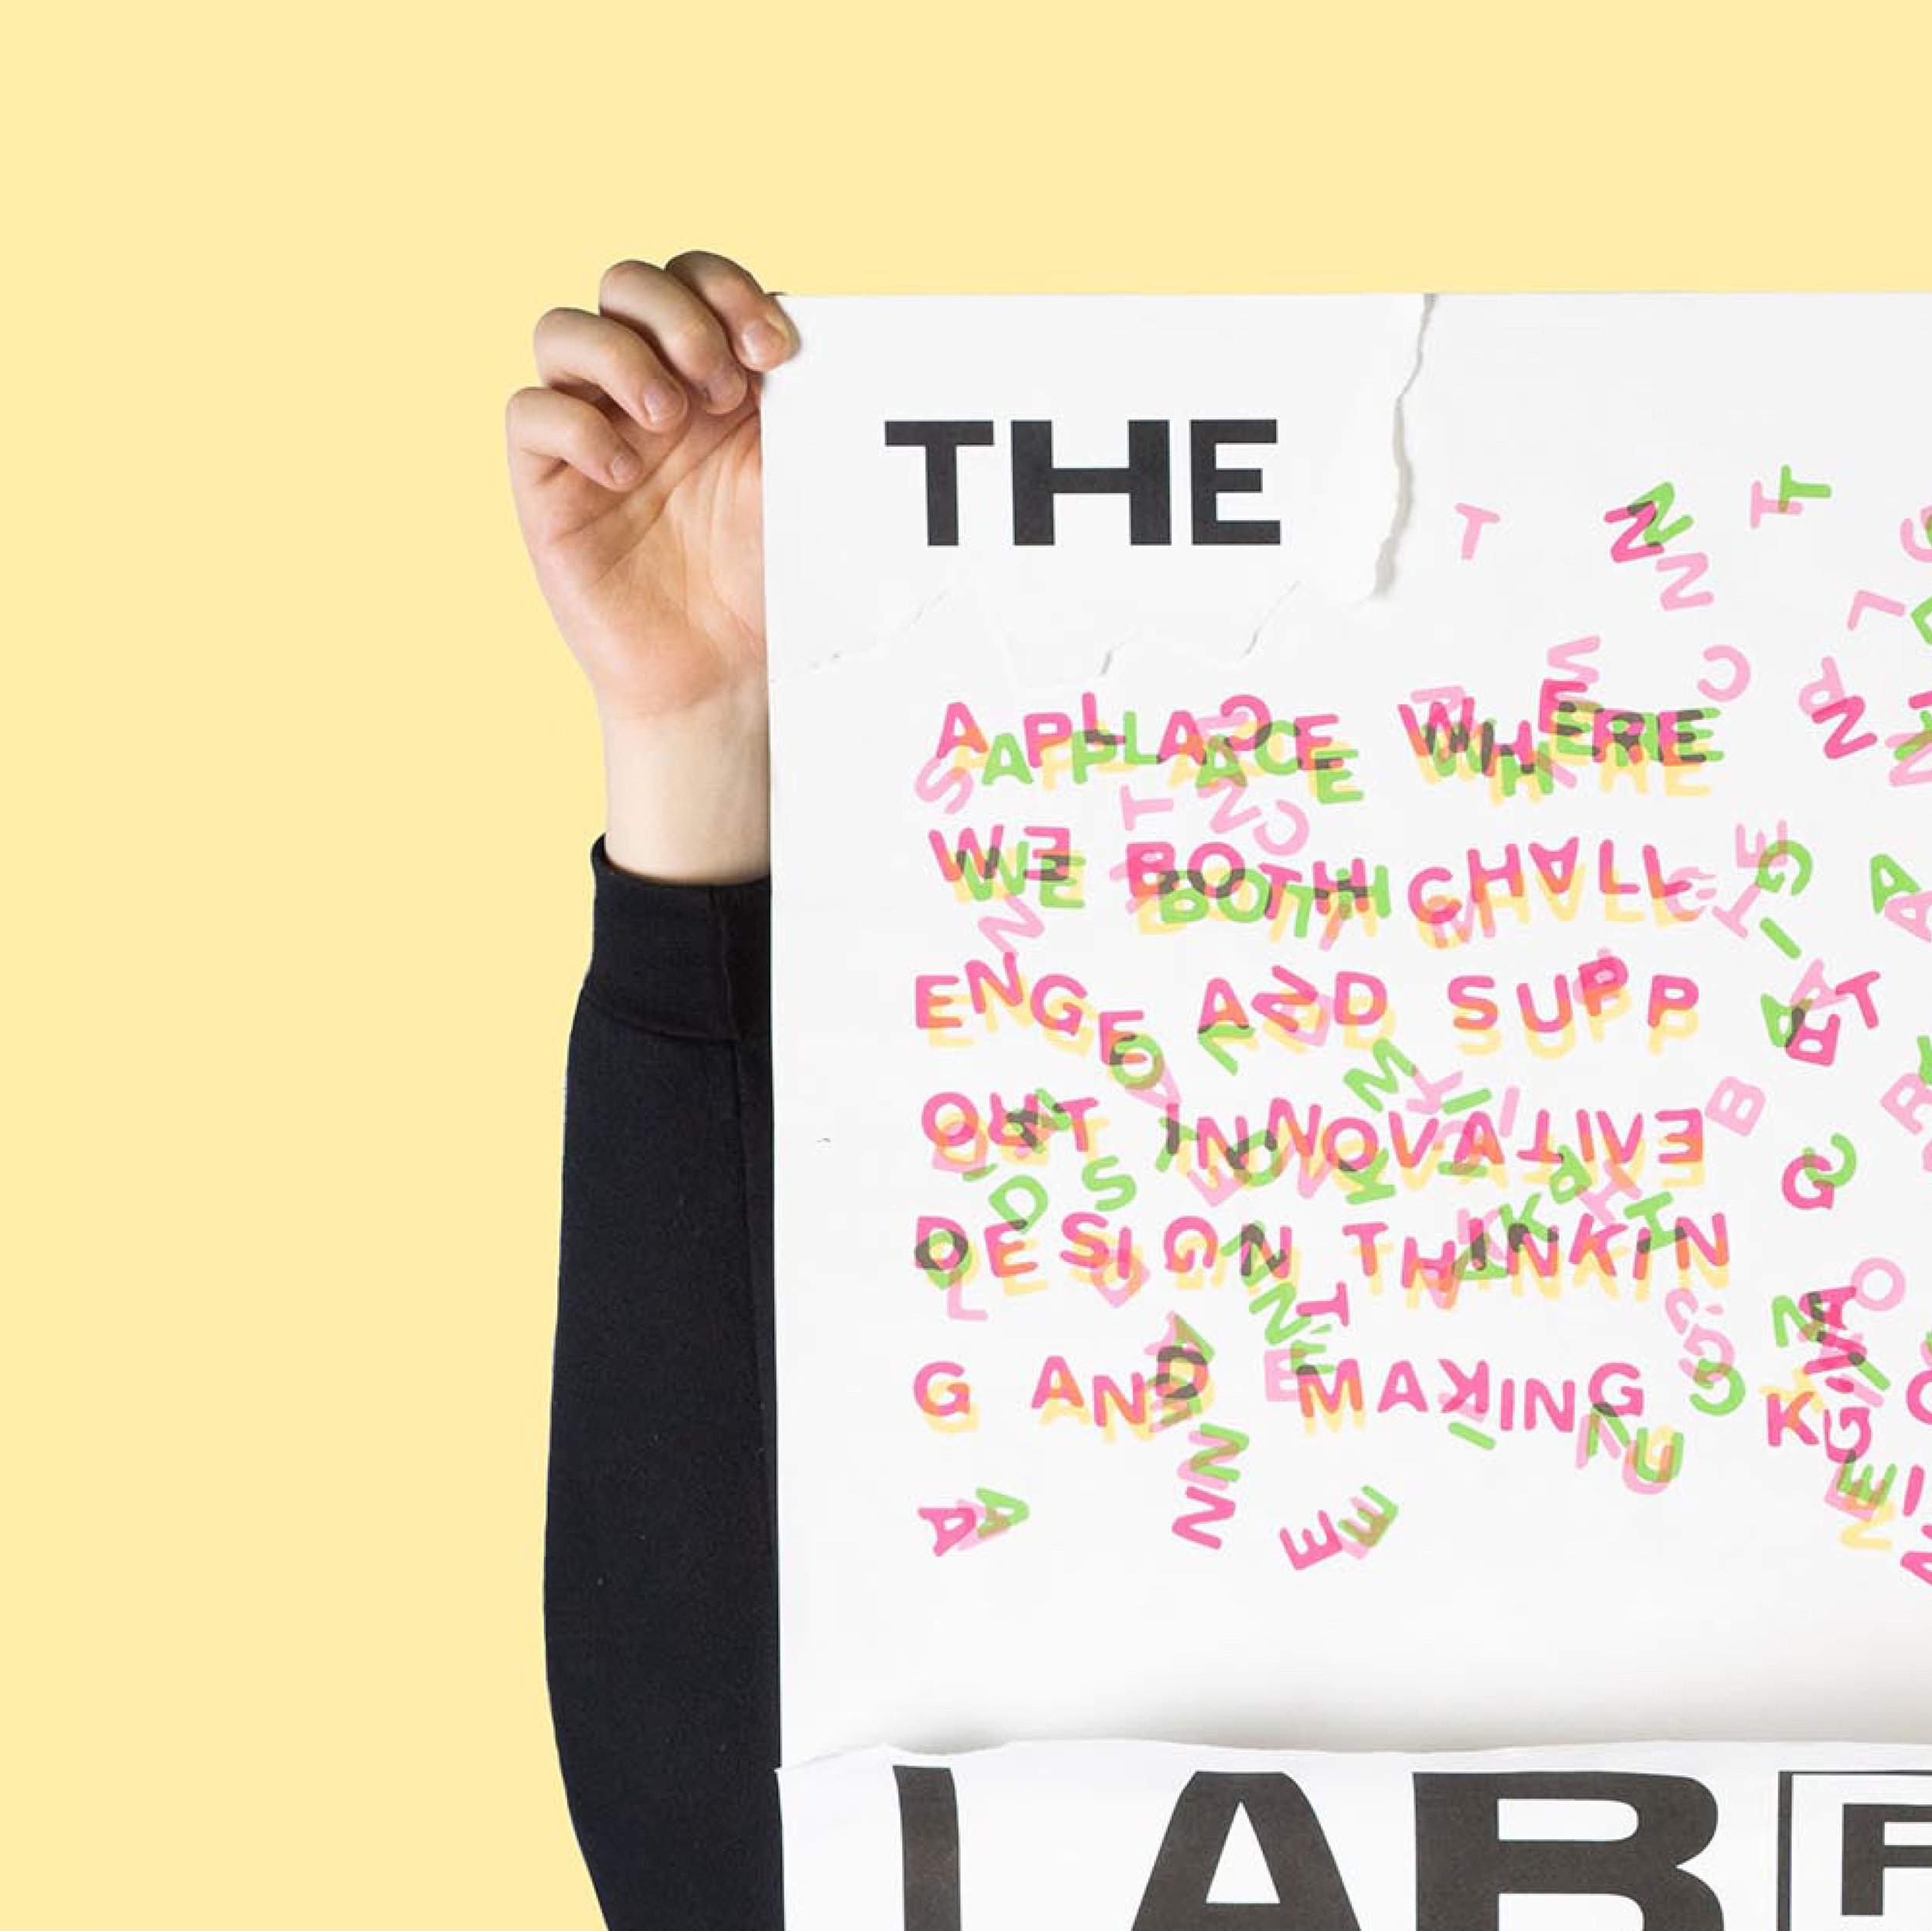 THE_LAB_POSTER